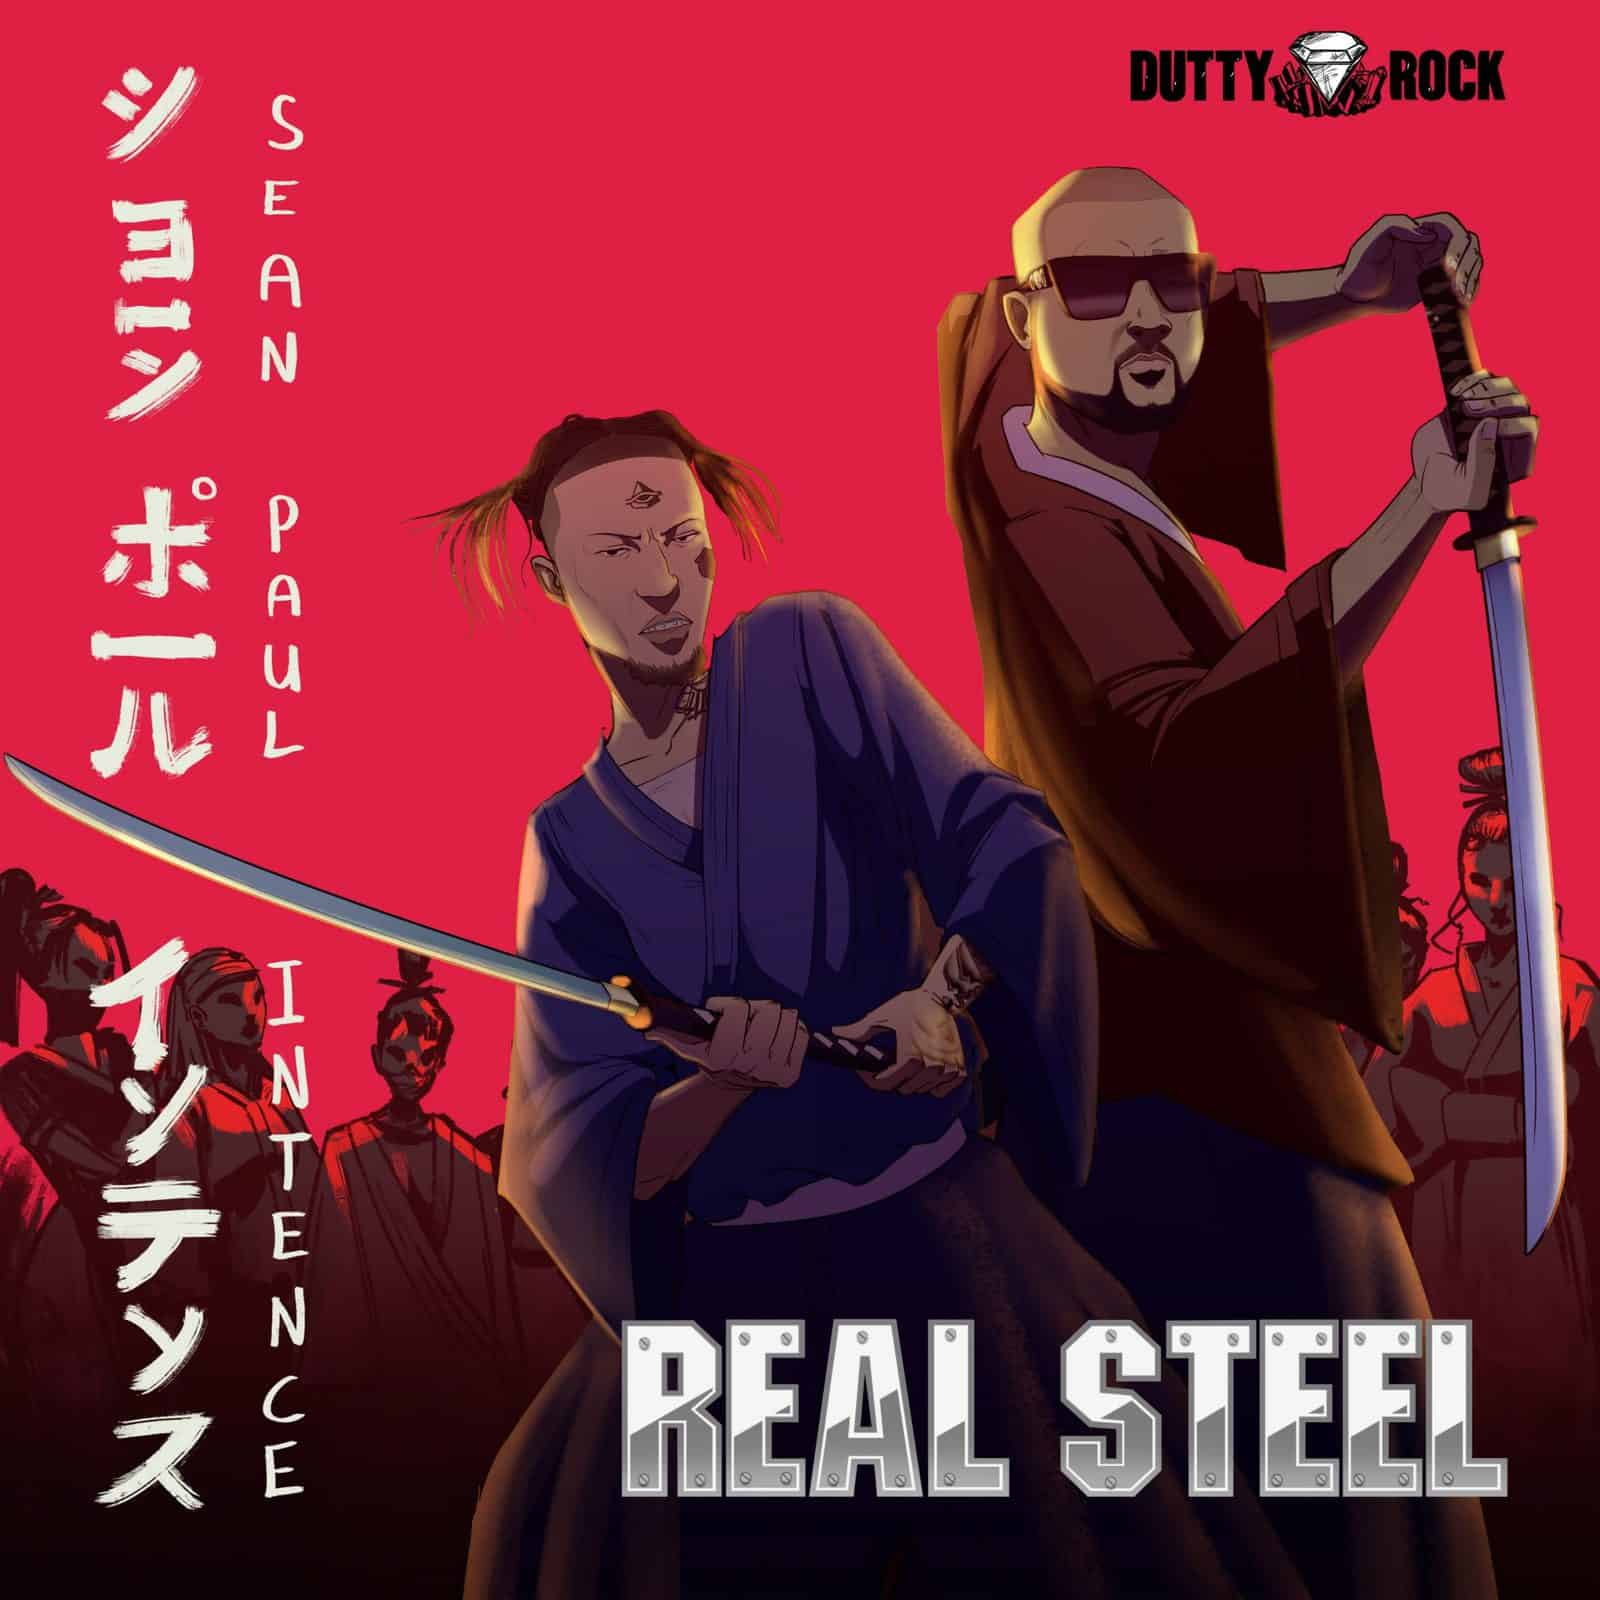 Sean Paul & Intence - Real Steel - Dutty Rock Productions